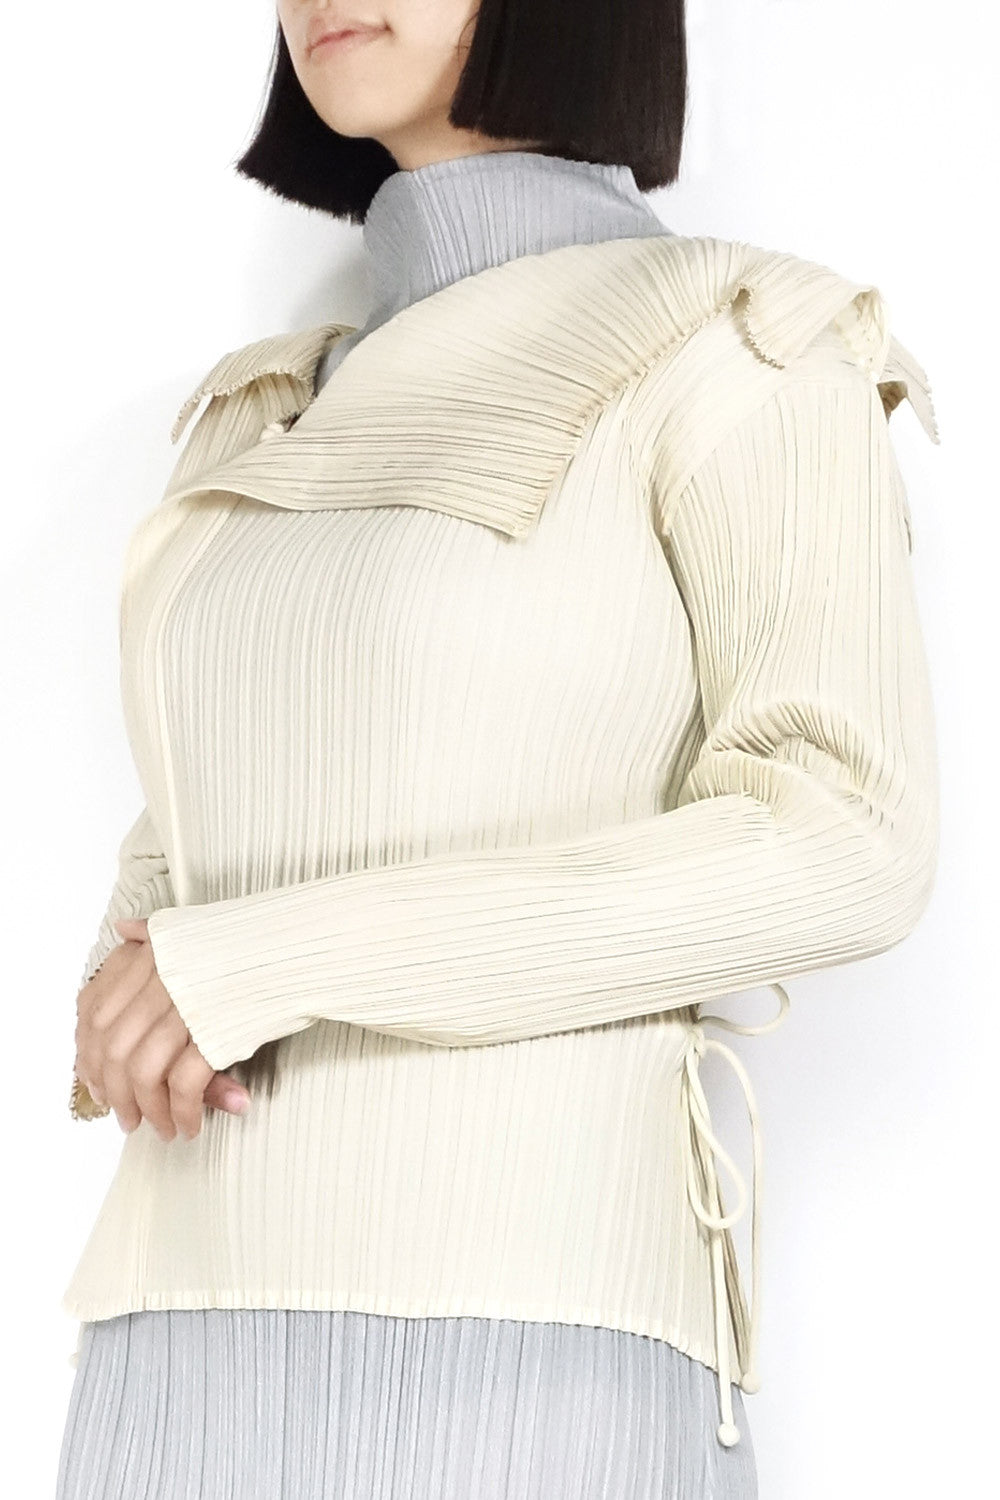 Issey Miyake FETE Pleated Blouse Sz 2